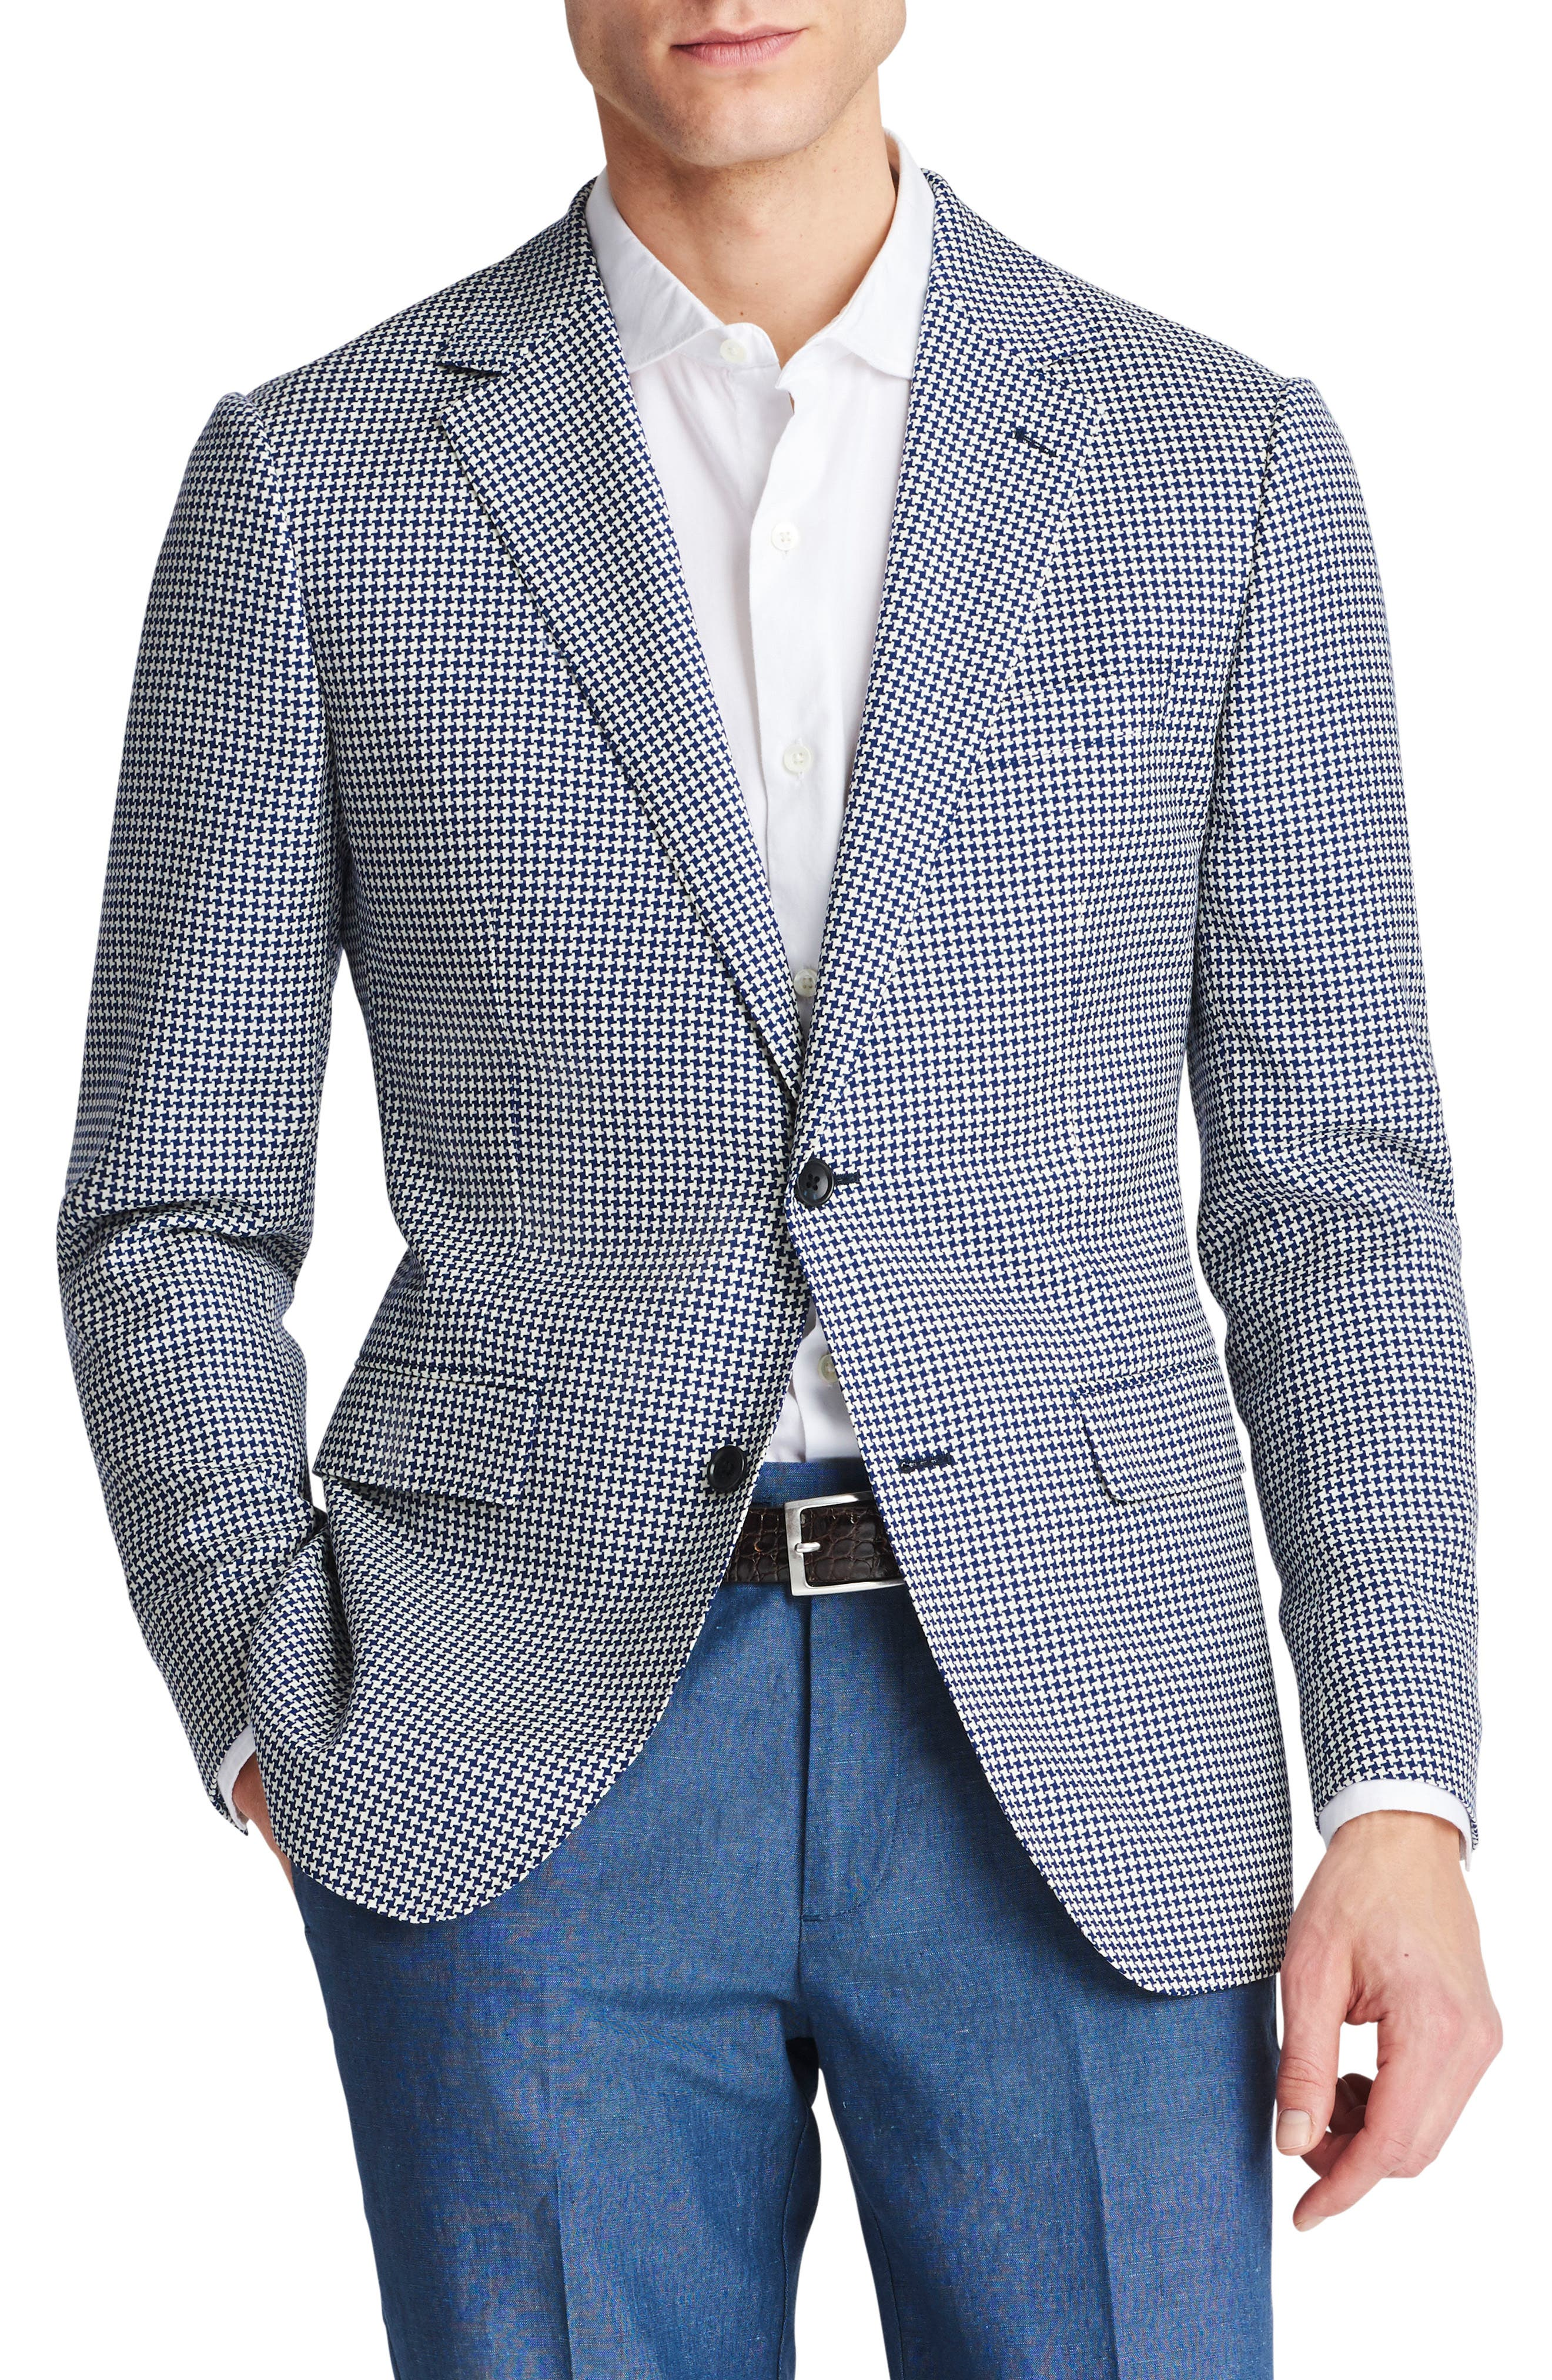 Capstone Slim Fit Houndstooth Wool Sport Coat,                             Main thumbnail 1, color,                             Navy White Houndstooth